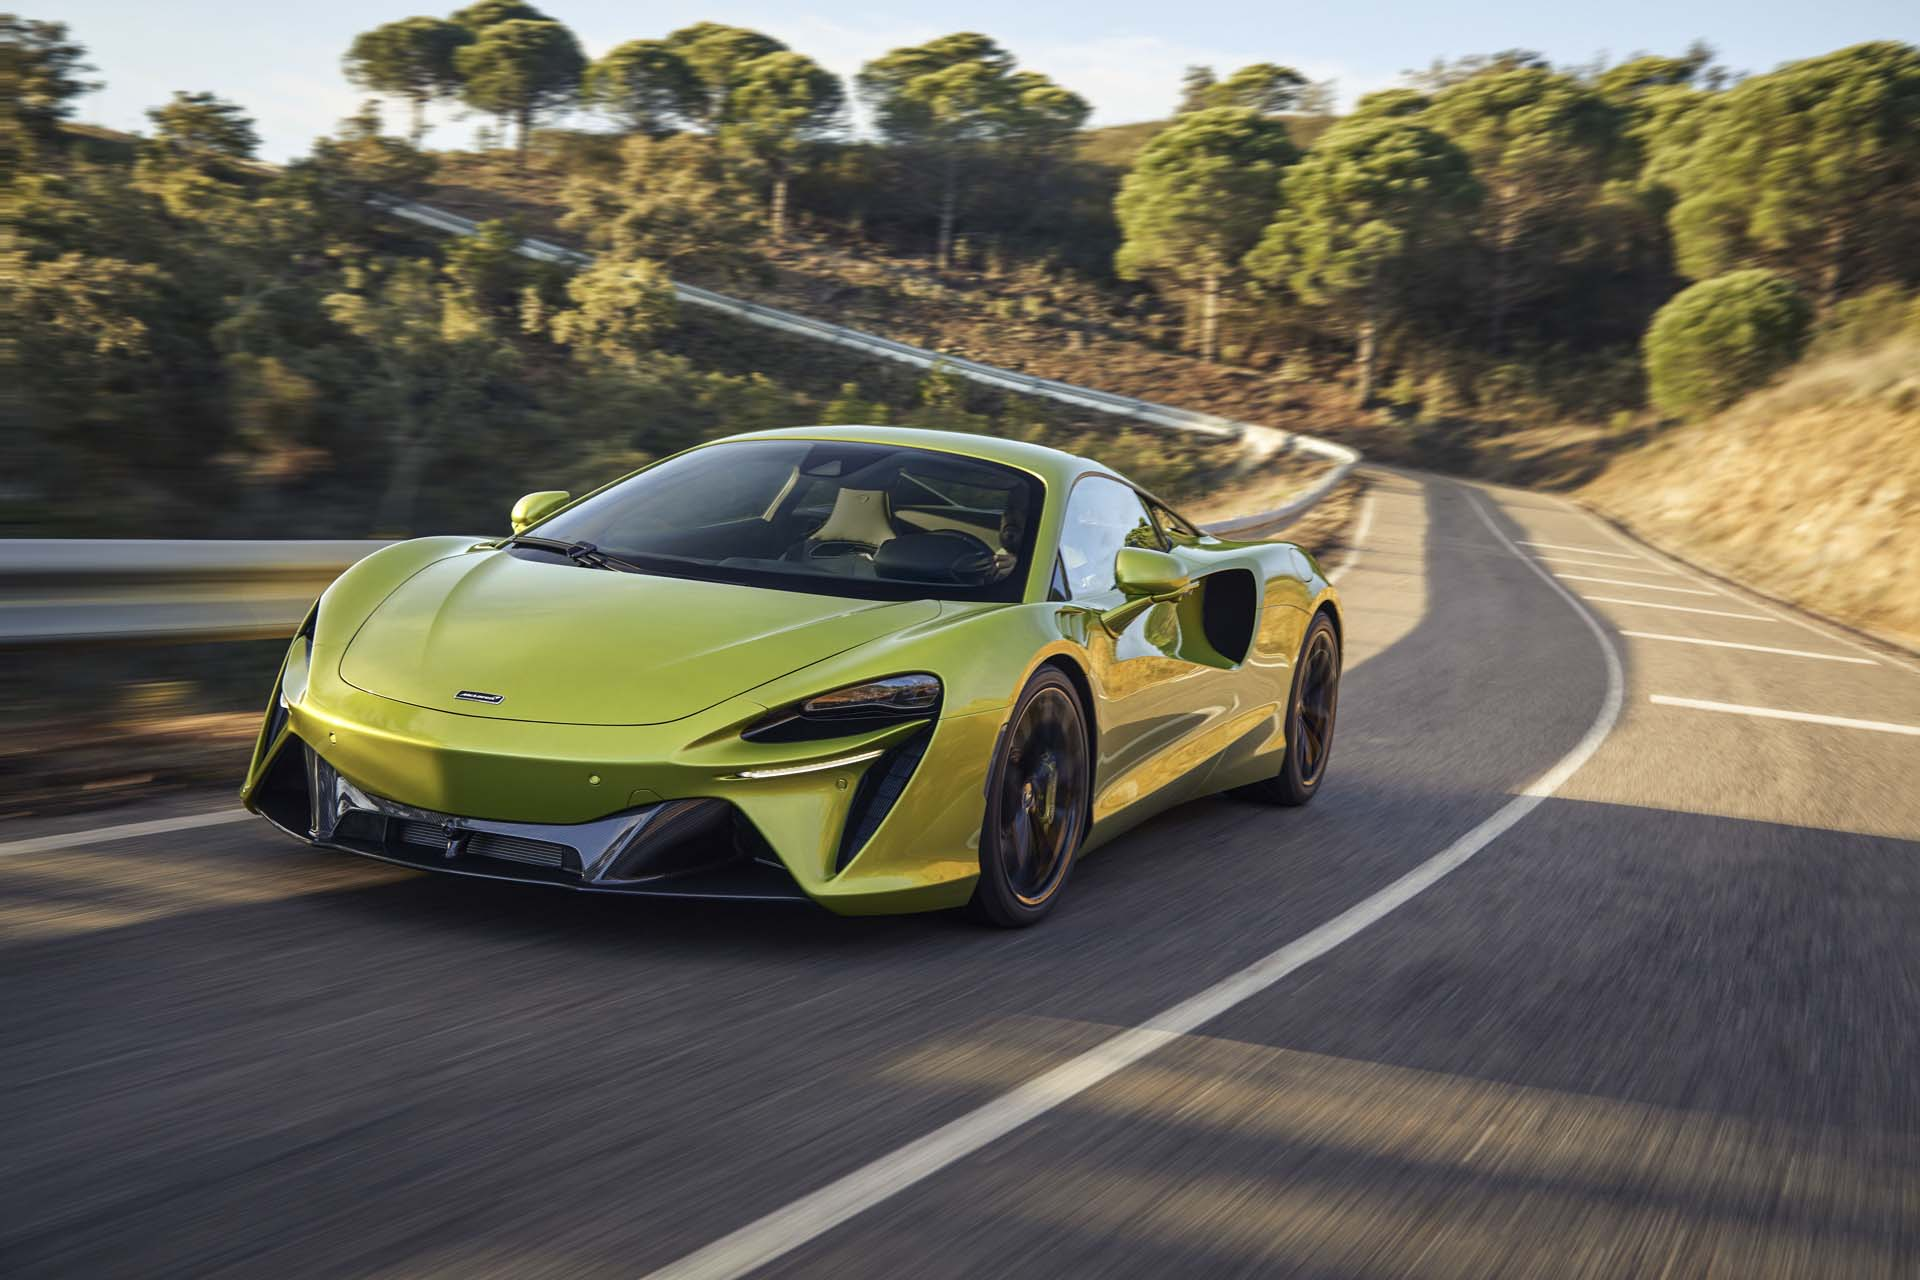 2022 McLaren Artura plug-in hybrid supercar arrives with V-6 engine, no gear for reverse - Motor Authority